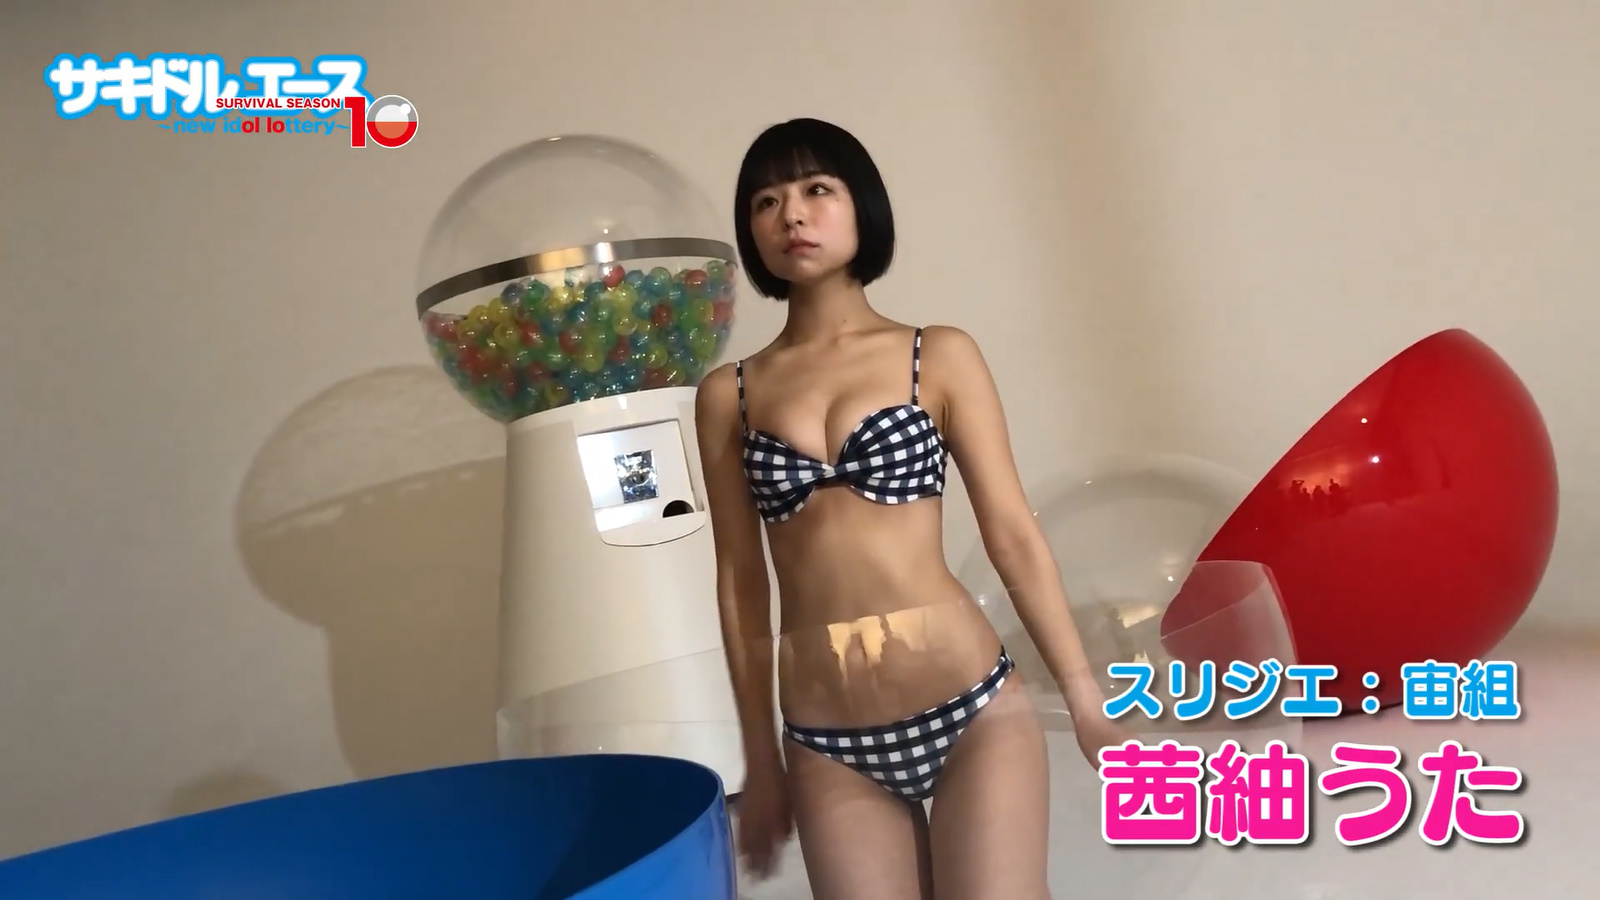 Sakidol Ace 10 Introduction Movie Capture of Swimsuit054